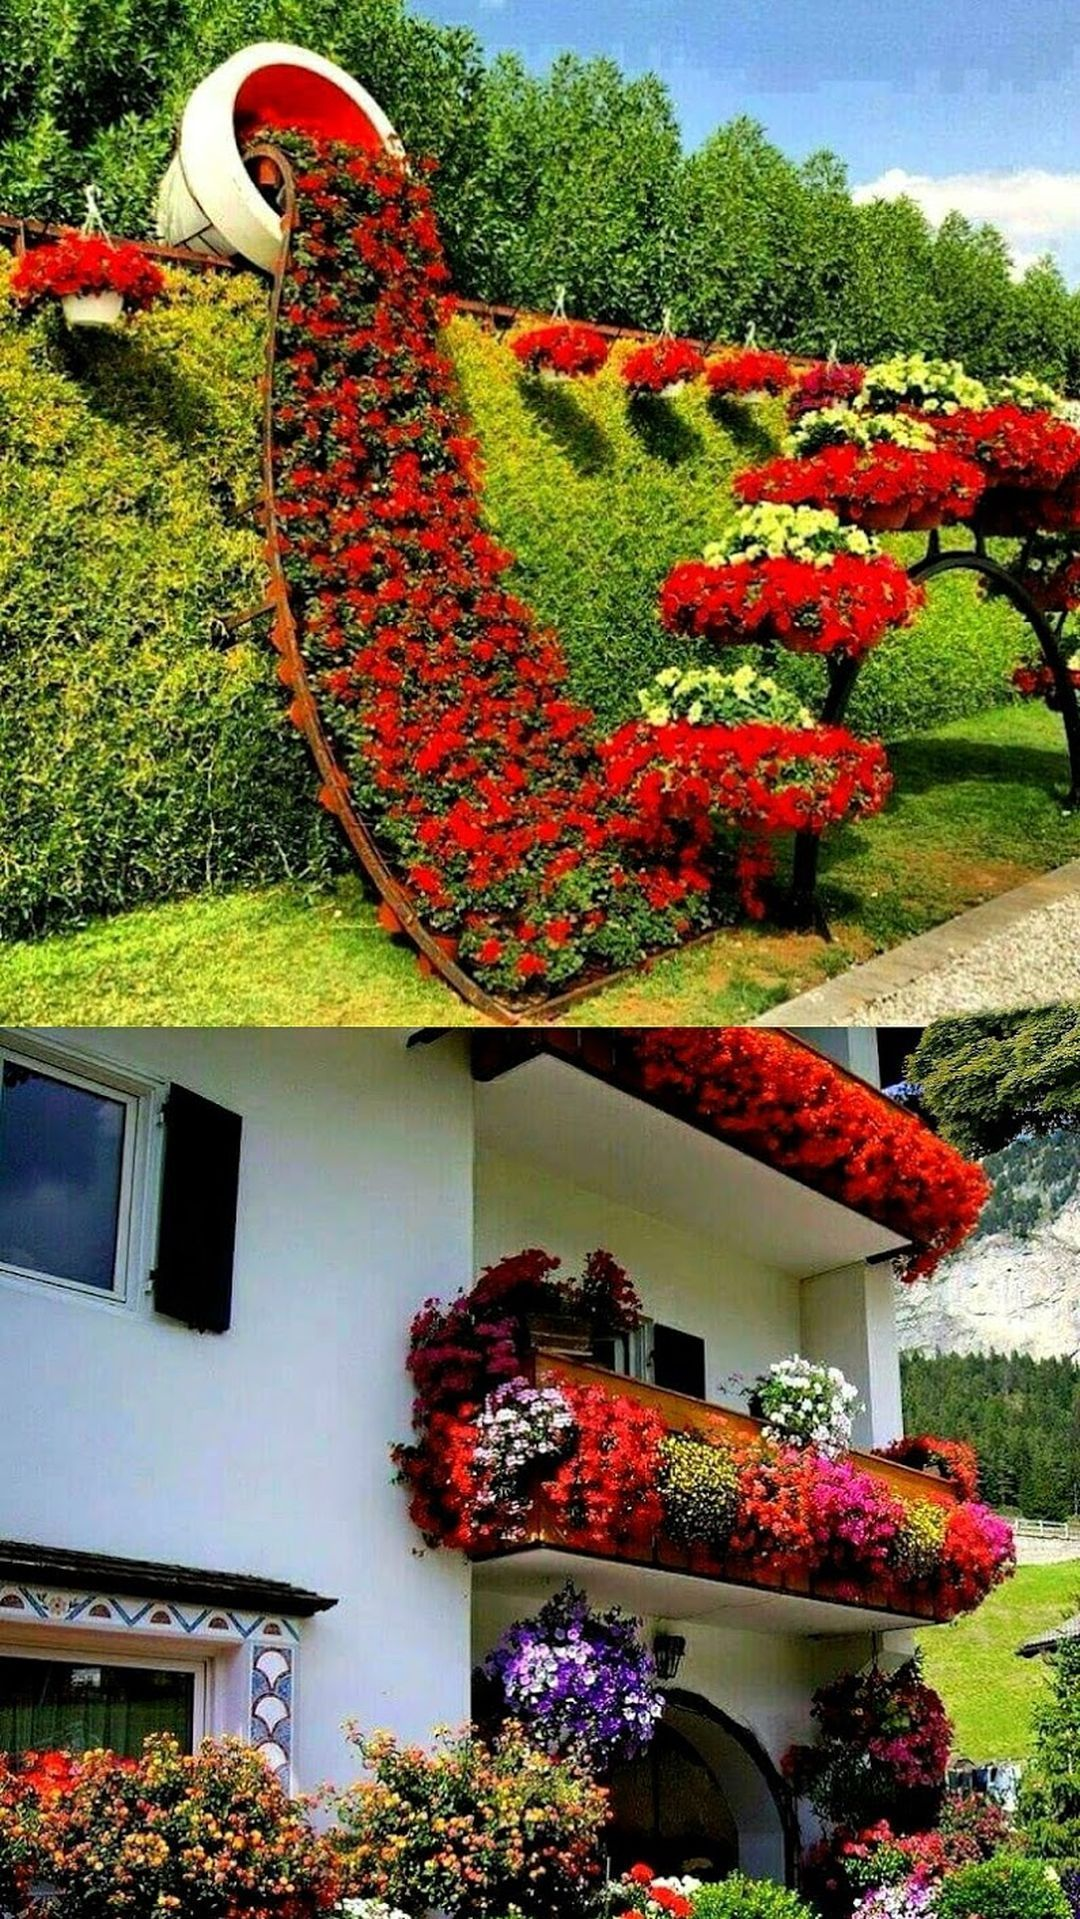 Easy Diy Backyard Landscaping On A Budget 08 Onechitecture Easy Diy Backyard Landscaping On A Budget In 2020 Garten Landschaftsbau Landschaftsbau Diy Hinterhof